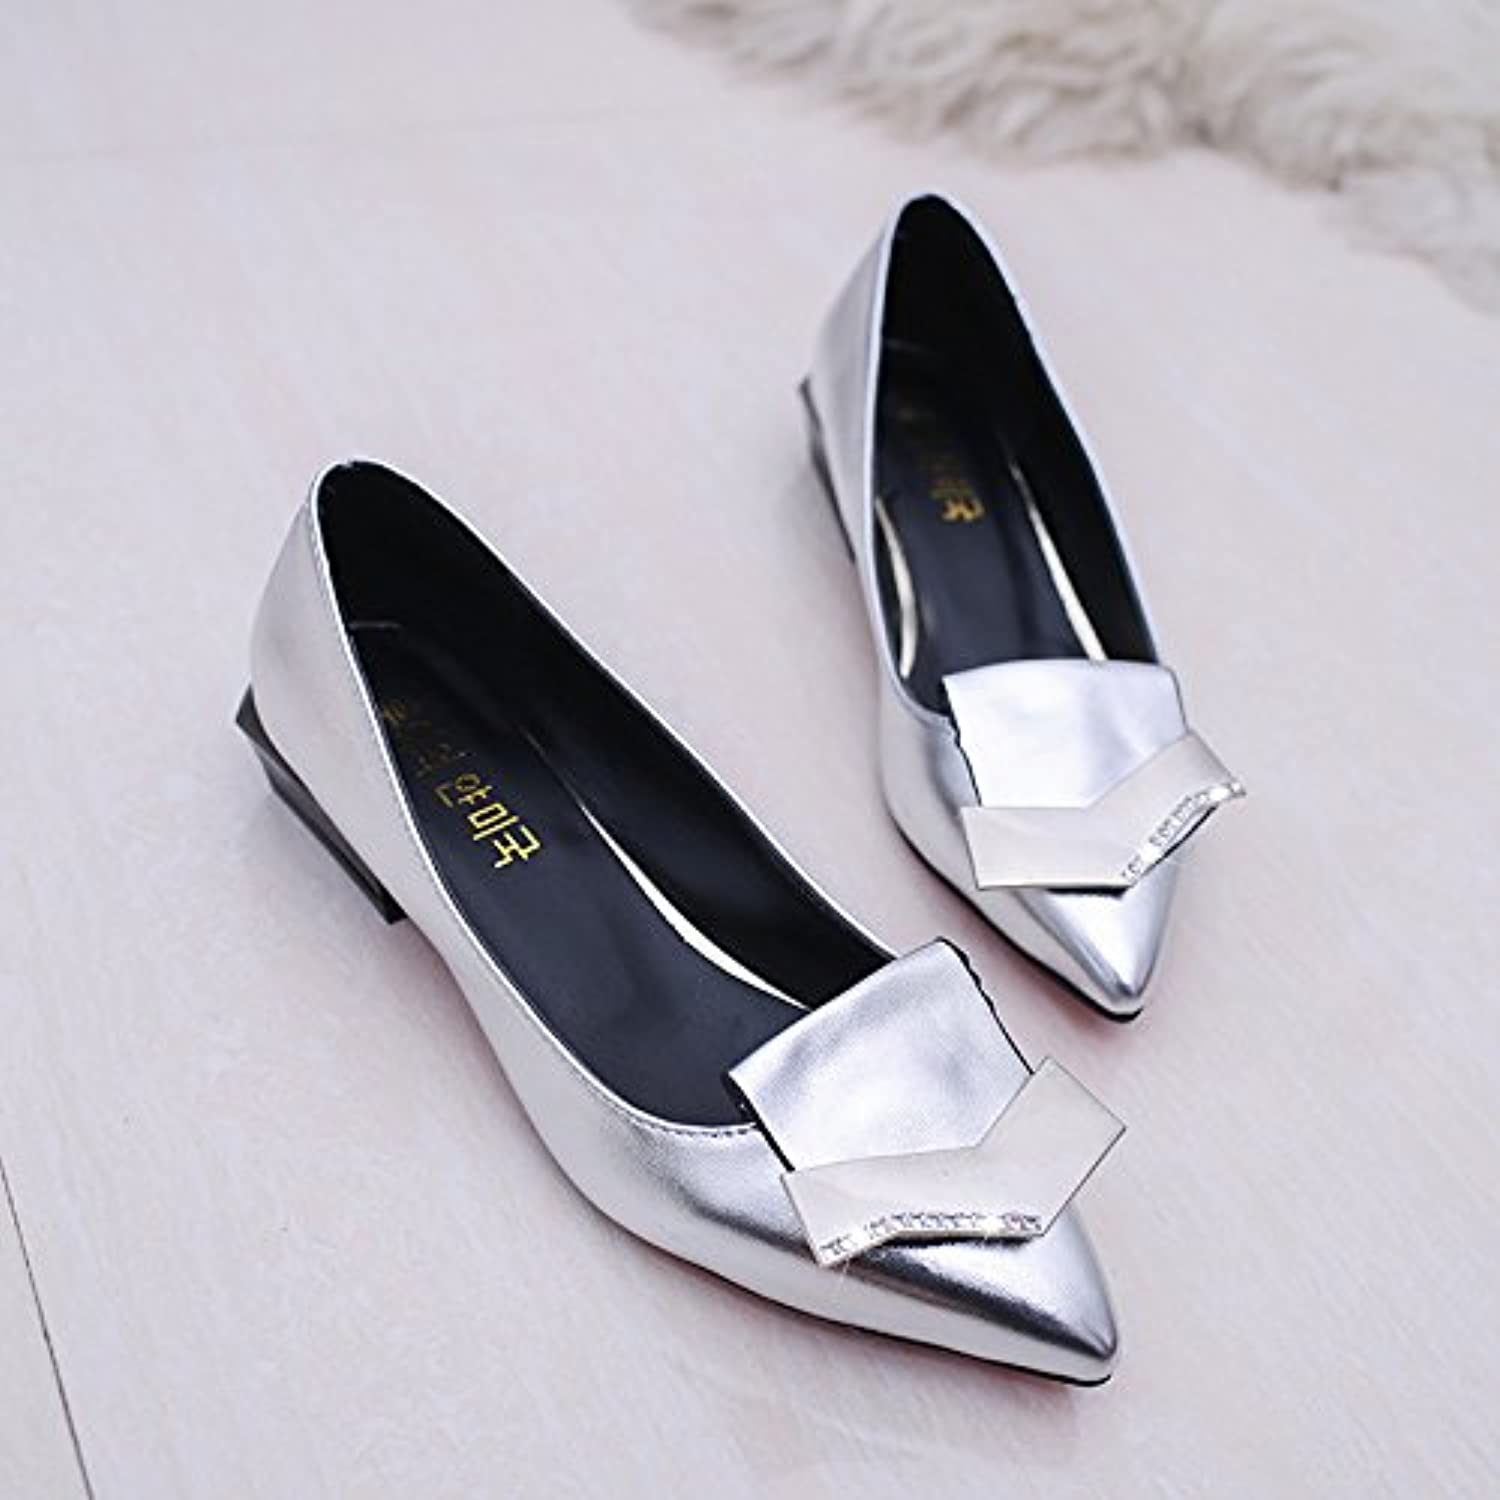 WYMBS Autumn and Winter GiftsWomen's shoes Pointed Shallow Mouth Square with shoes